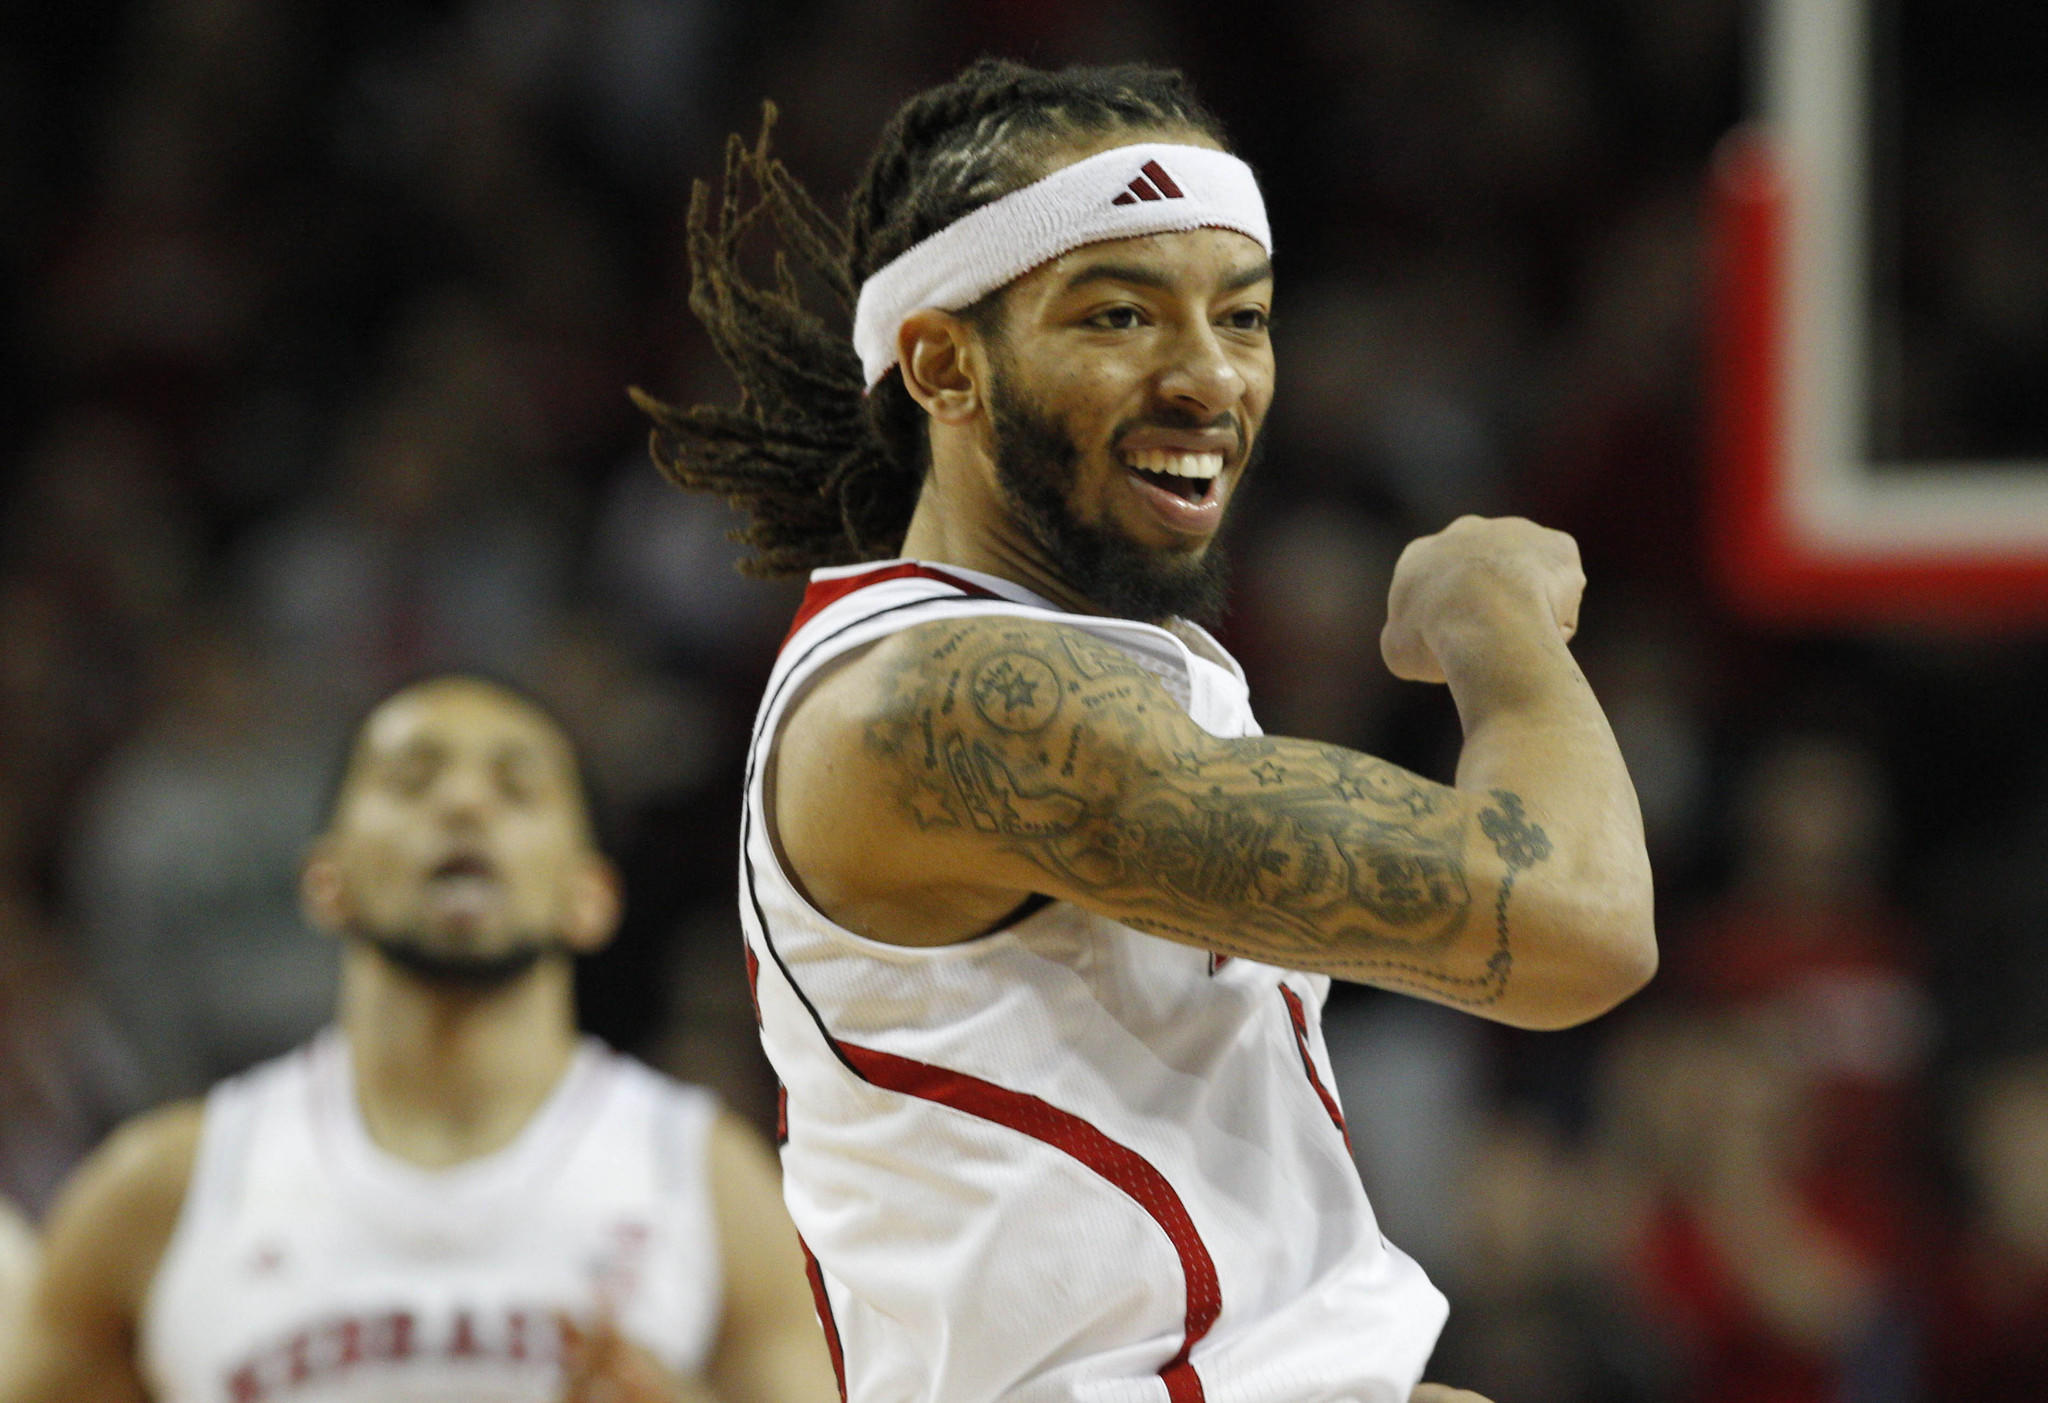 Nebraska's Terran Petteway celebrates during the game against Penn State in the second half at Pinnacle Bank Arena. Nebraska won 80-67.